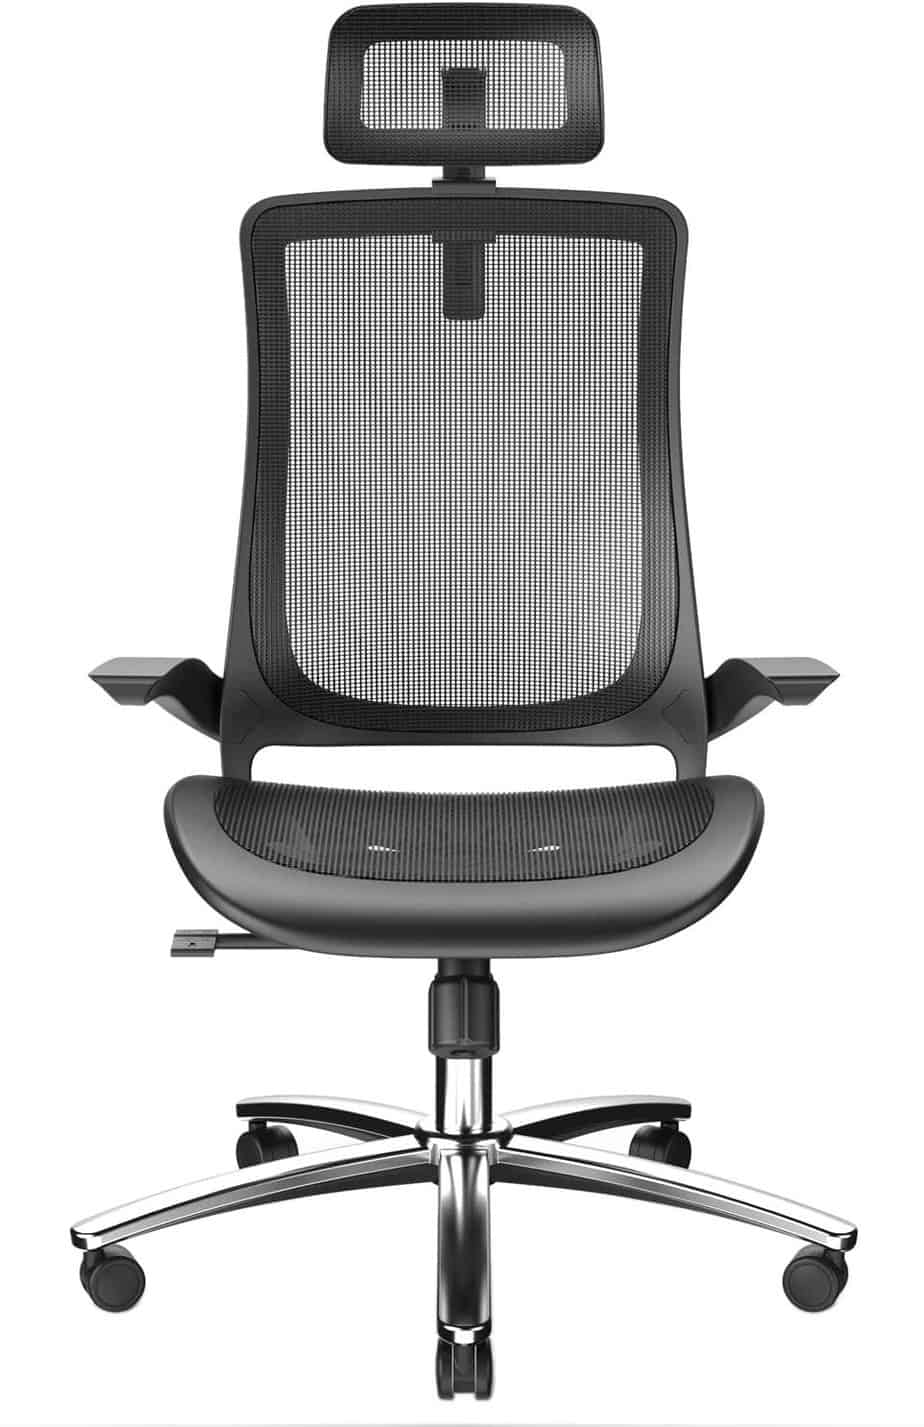 Bilko Office chair with breathable mesh seat and firm armrests